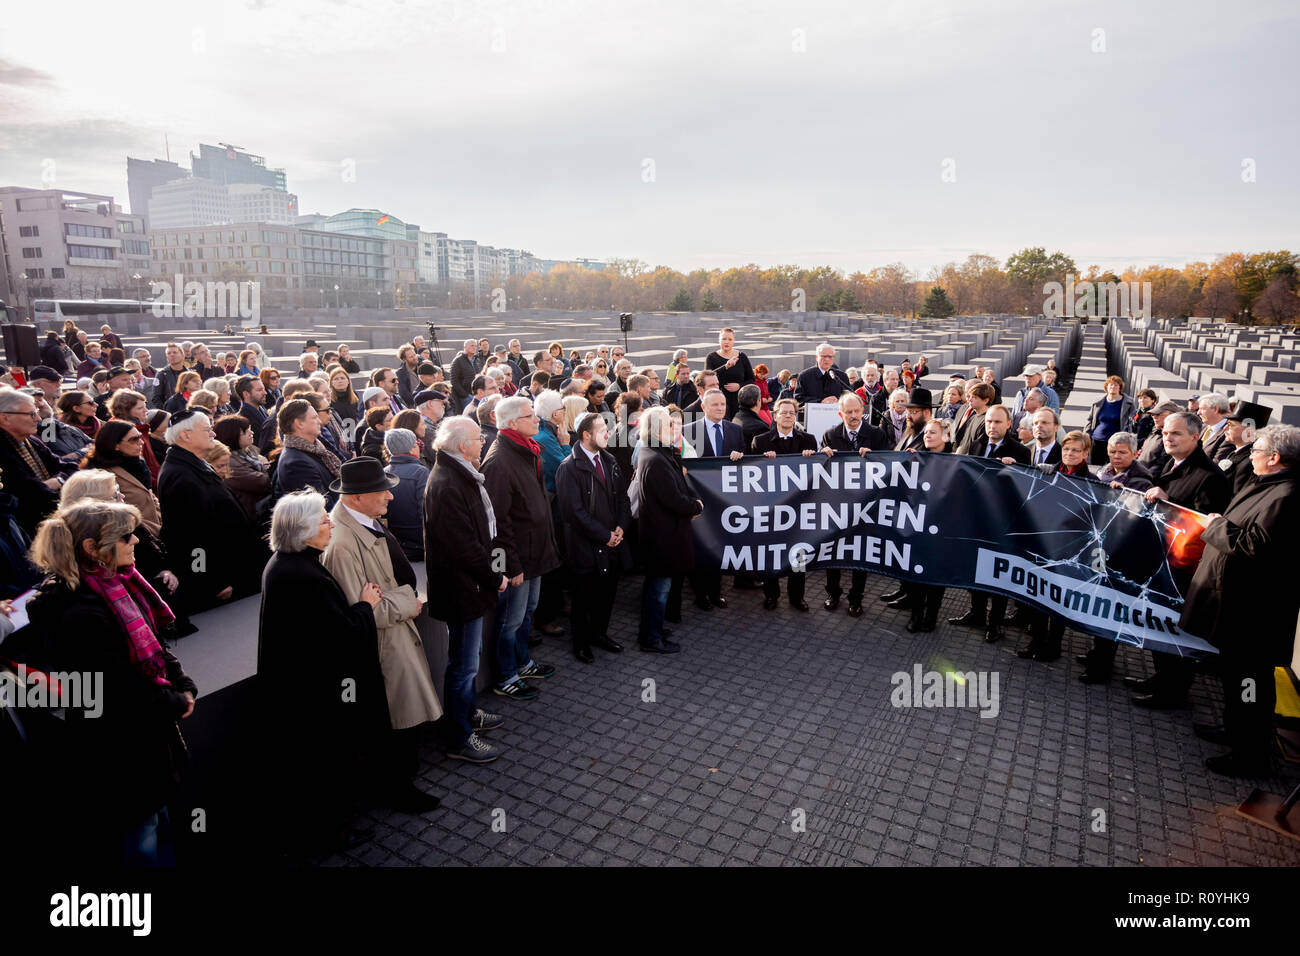 Berlin, Germany. 08th Nov, 2018. 'Remember. Remembrance. The poster of a silent march to the memorial to the murdered Jews of Europe on the occasion of the 80th anniversary of the November pogroms of 1938 reads 'Mitgehen. Credit: Christoph Soeder/dpa/Alamy Live News - Stock Image